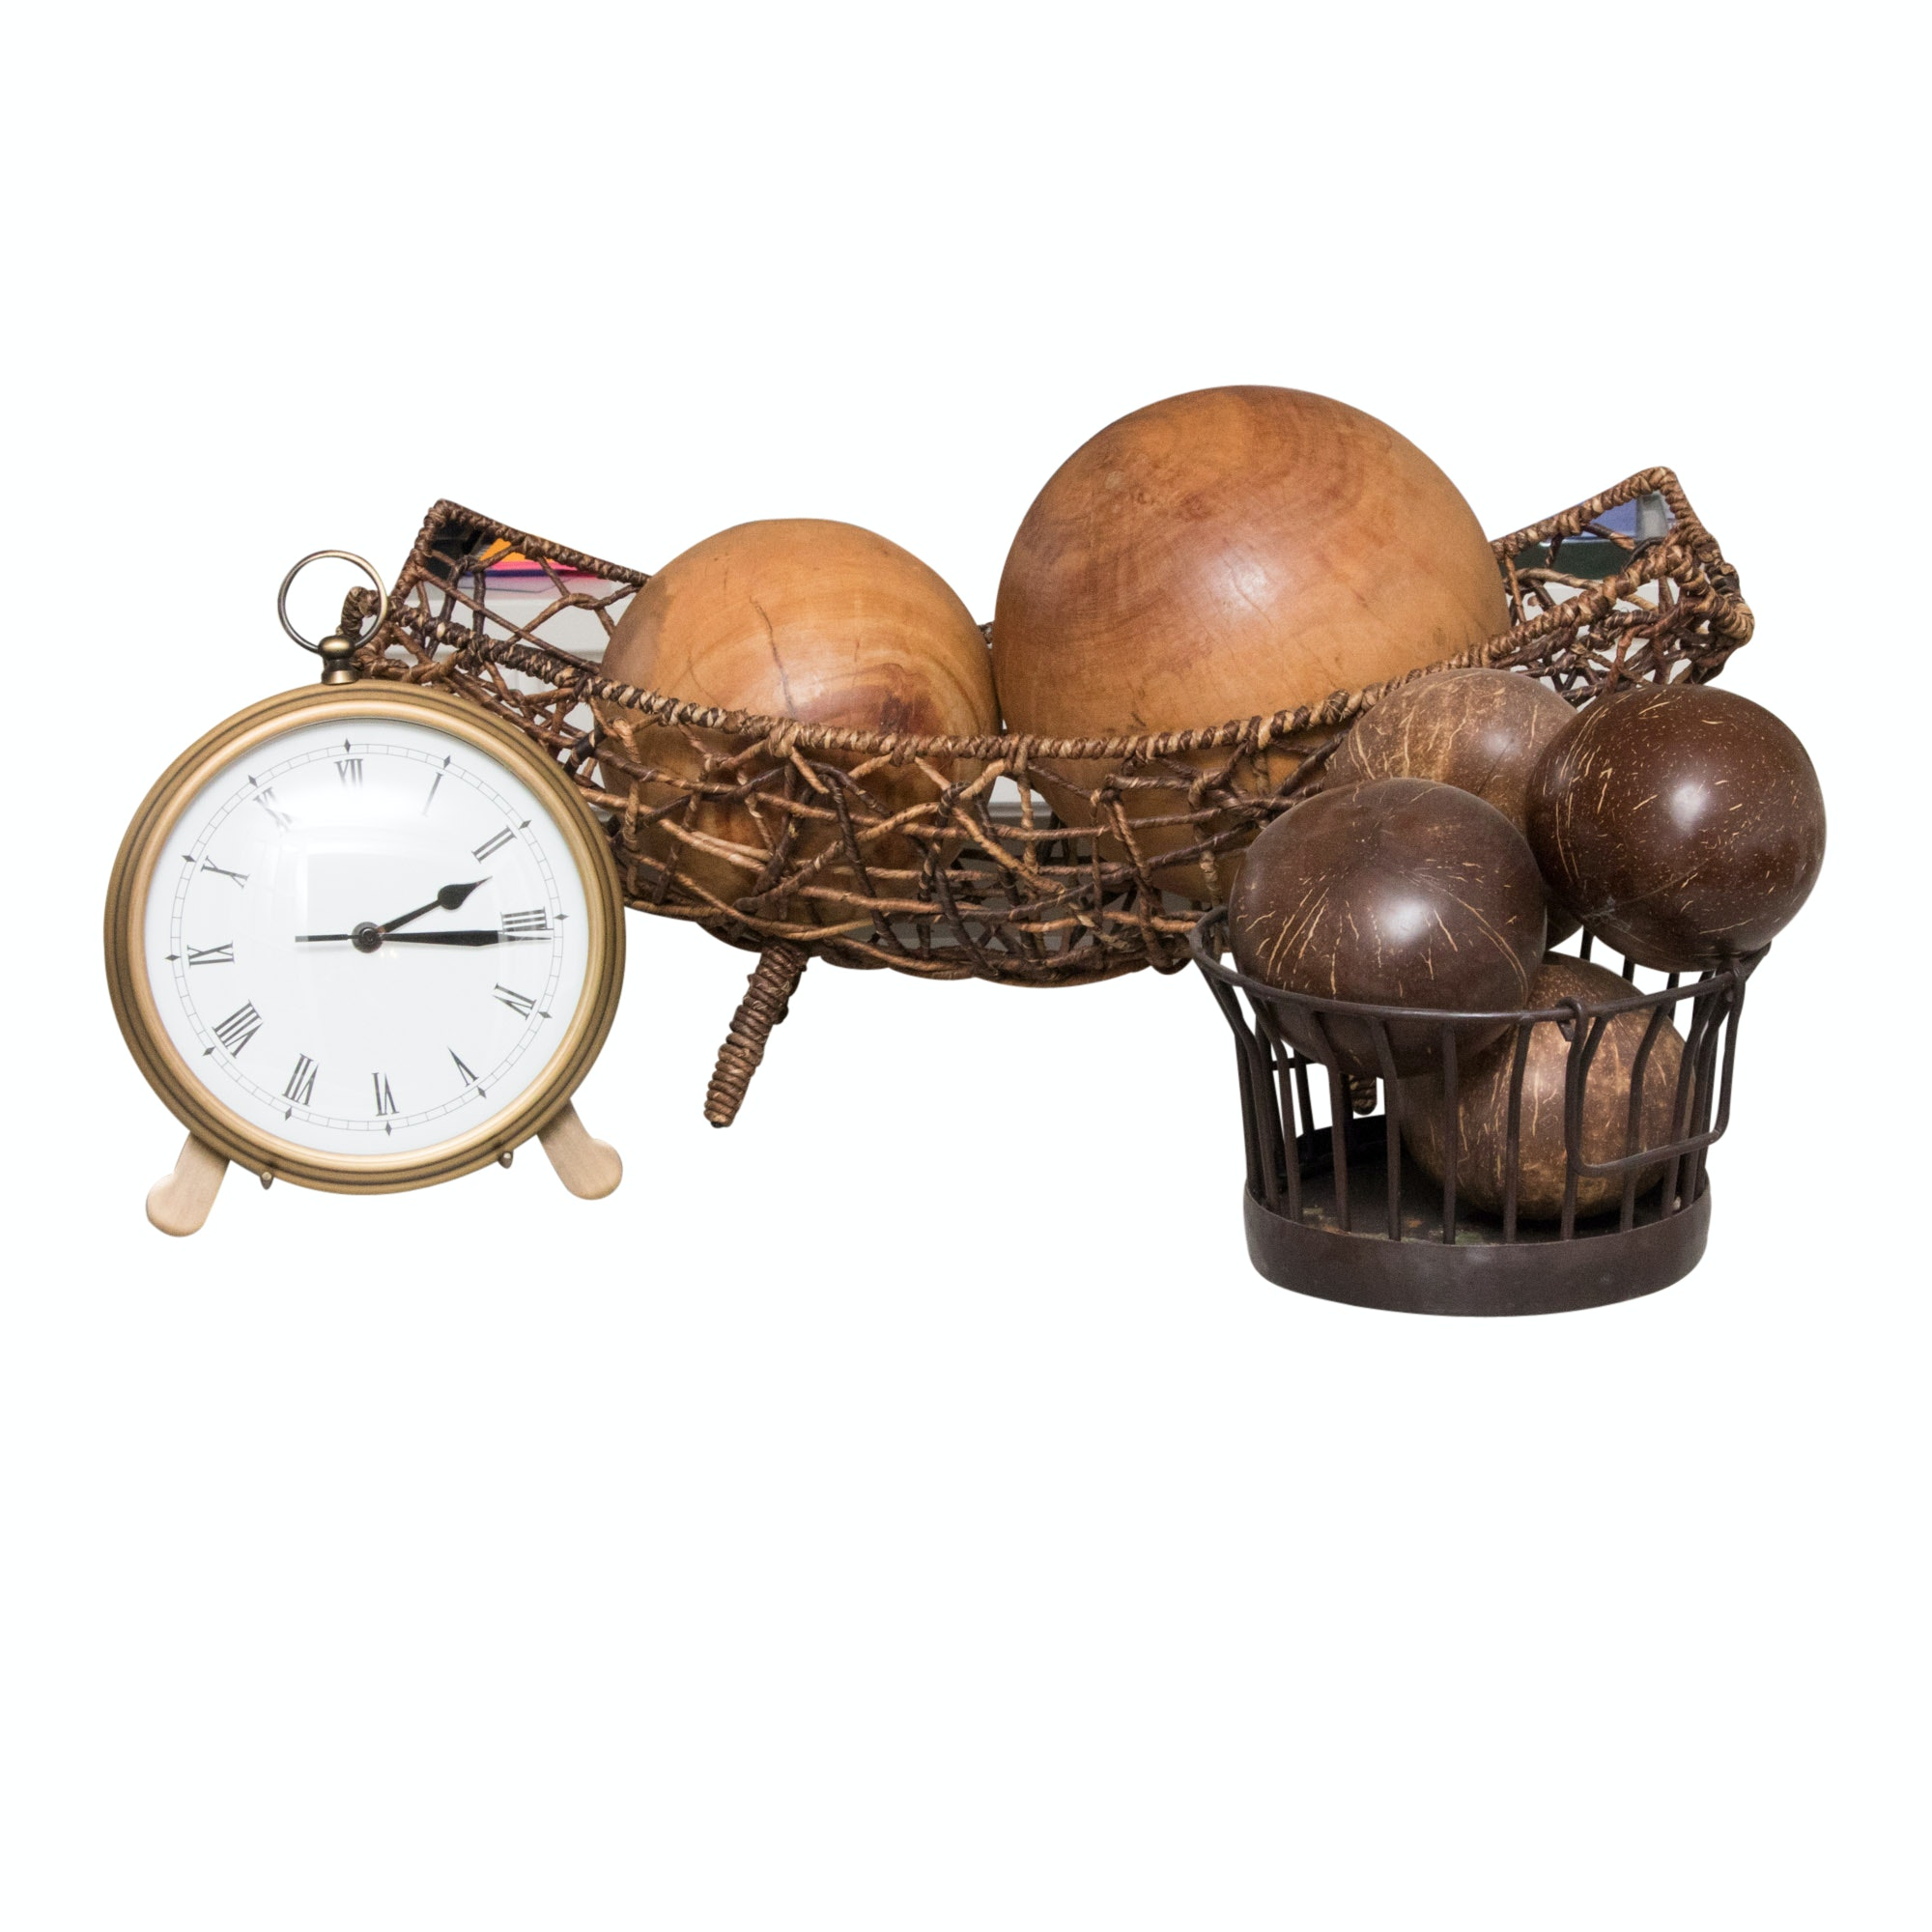 Pocket Watch Clock by Pottery Barn with Natural Fiber and Metal Baskets